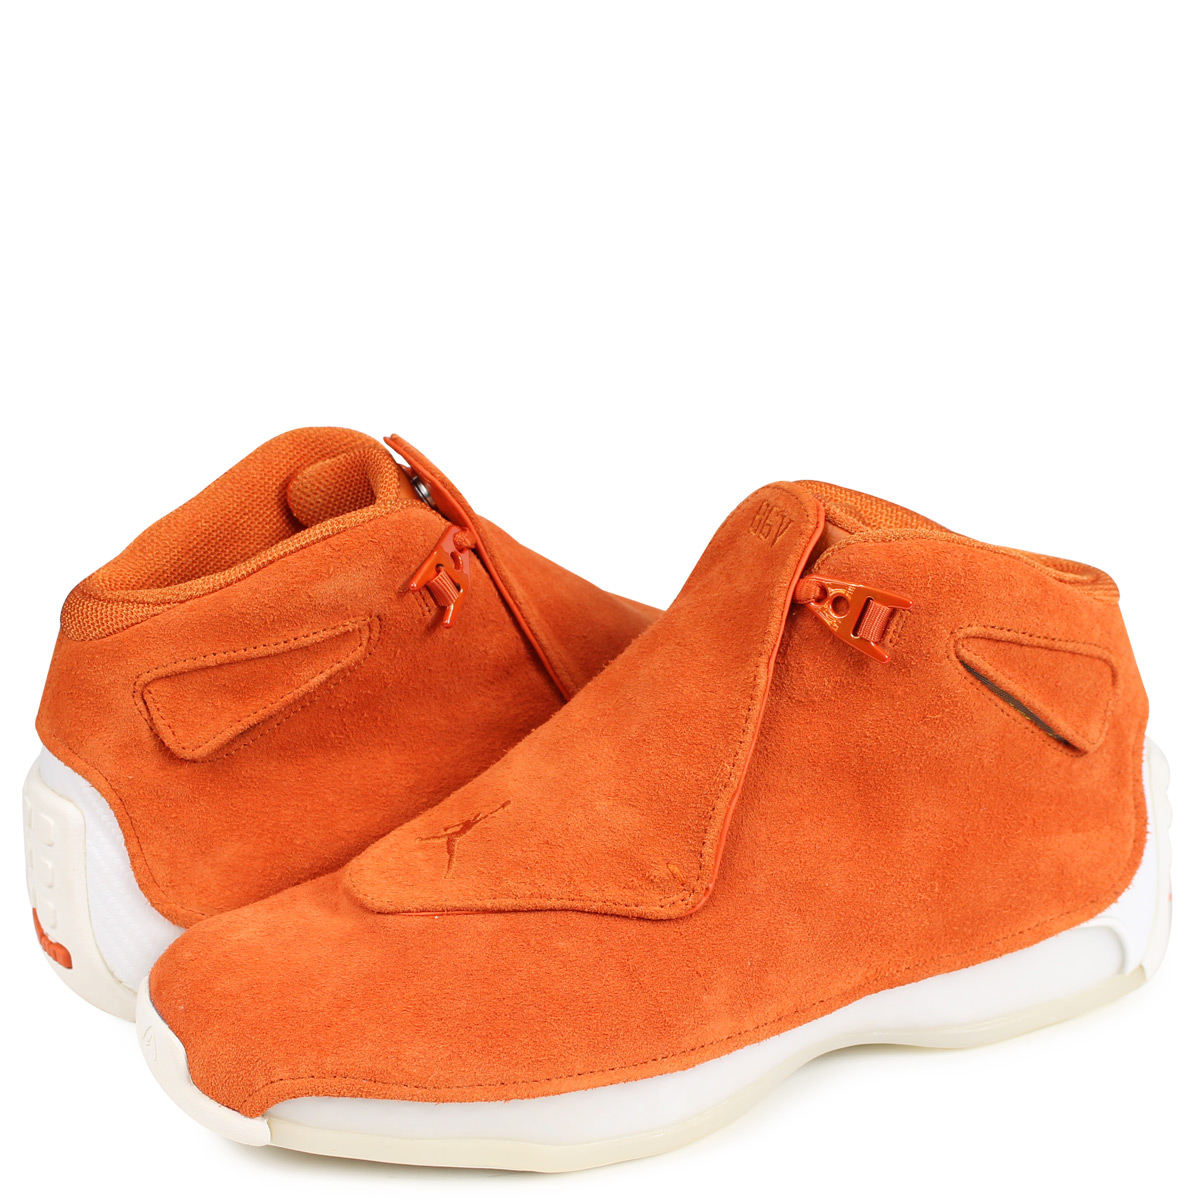 264184841511 Nike NIKE Air Jordan 18 nostalgic sneakers men AIR JORDAN 18 RETRO orange  AA2494-801  1812